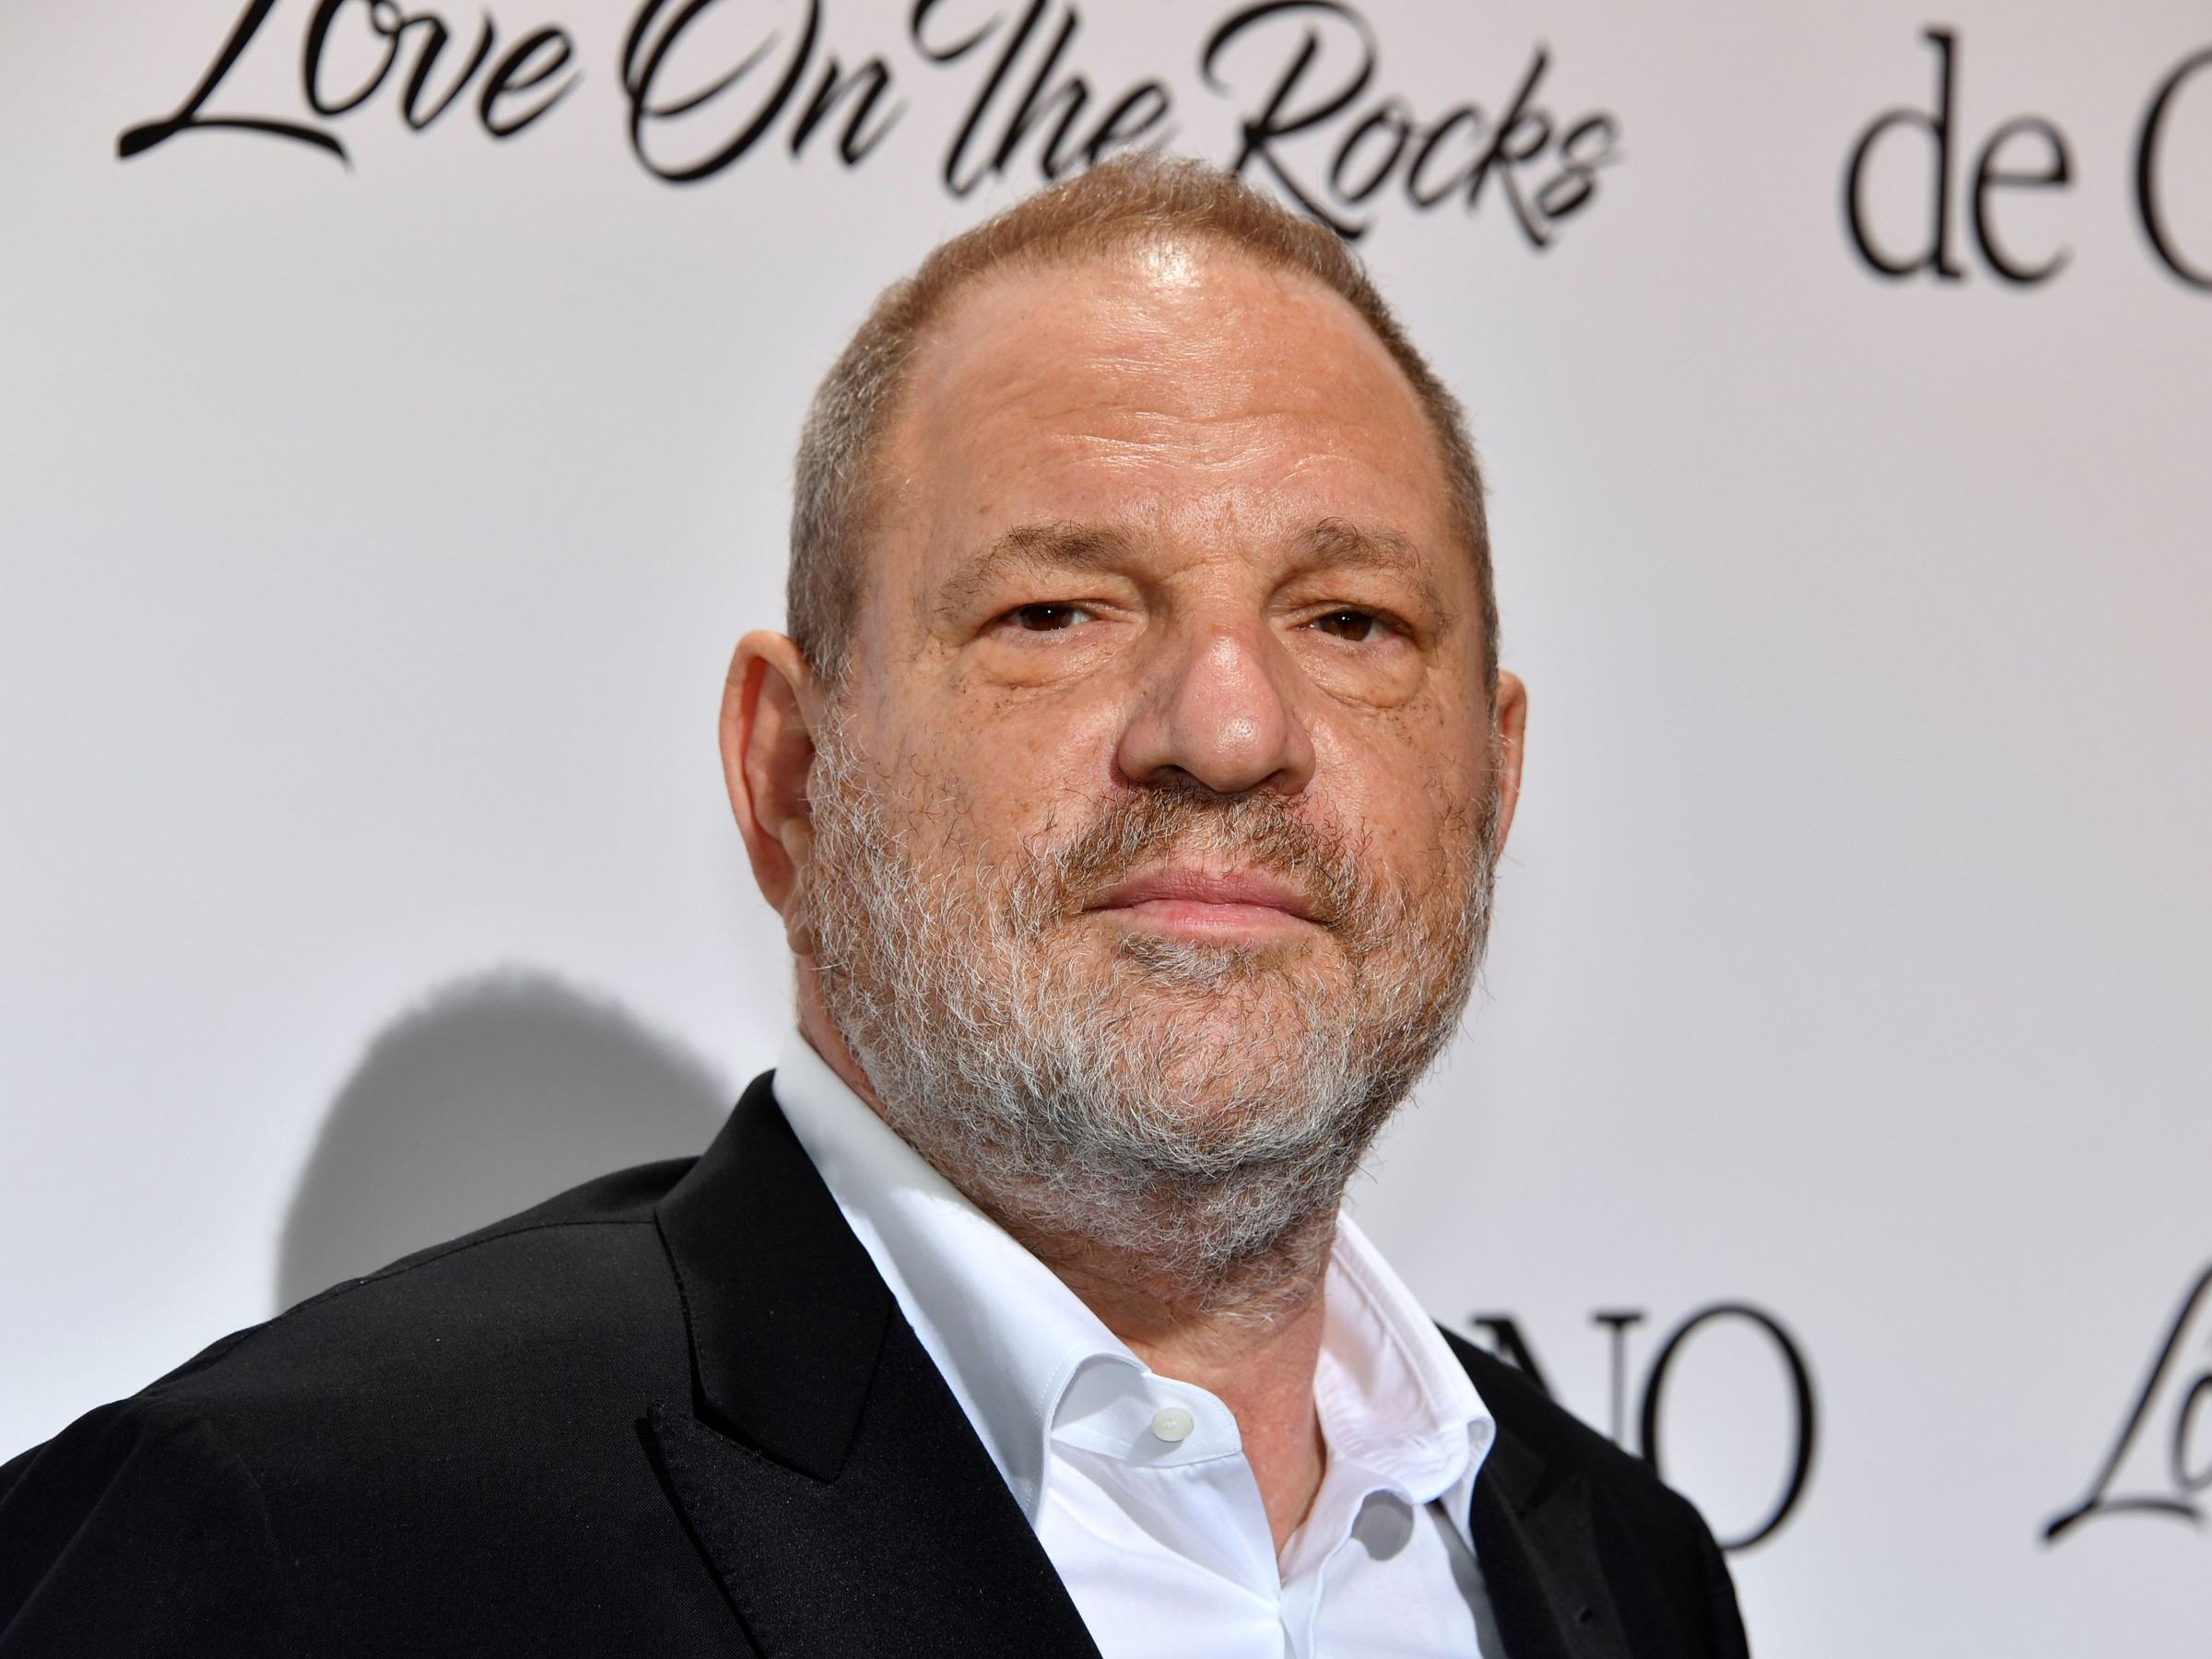 New York AG sues Harvey Weinstein following sexual misconduct allegations